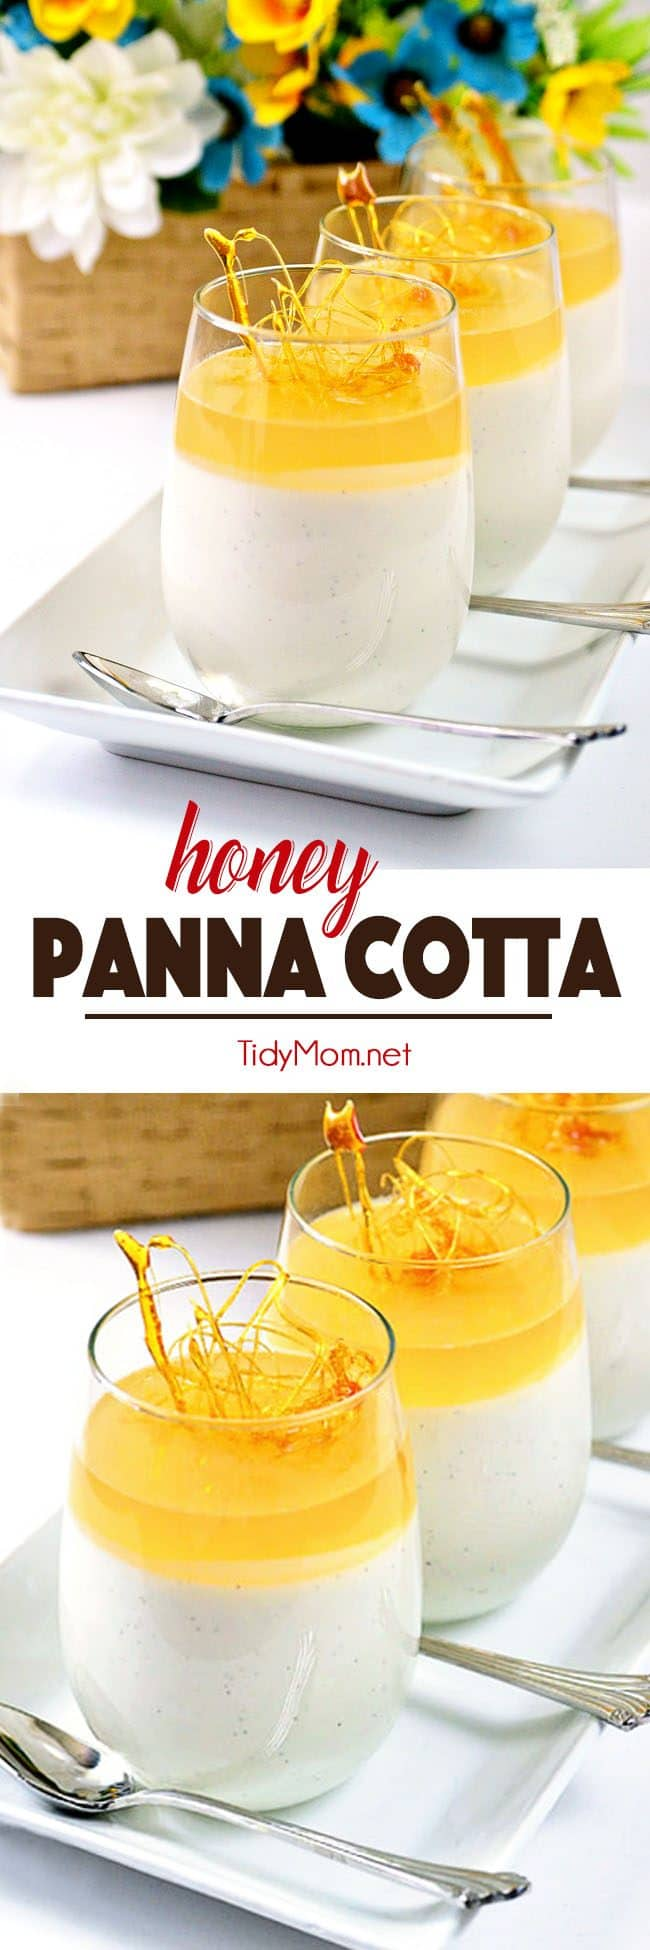 "Honey Panna Cotta looks like a fancy-schmancy dessert, but actually, it only takes a few minutes to prepare and the rest of the time, the fridge does all the work for you, making it a great ""make ahead"" dessert for a party table, and with it's simple, not too sweet flavor, it would be the perfect ending to a heavy meal. Get this HONEY PANNA COTTA recipe at TidyMom.net"